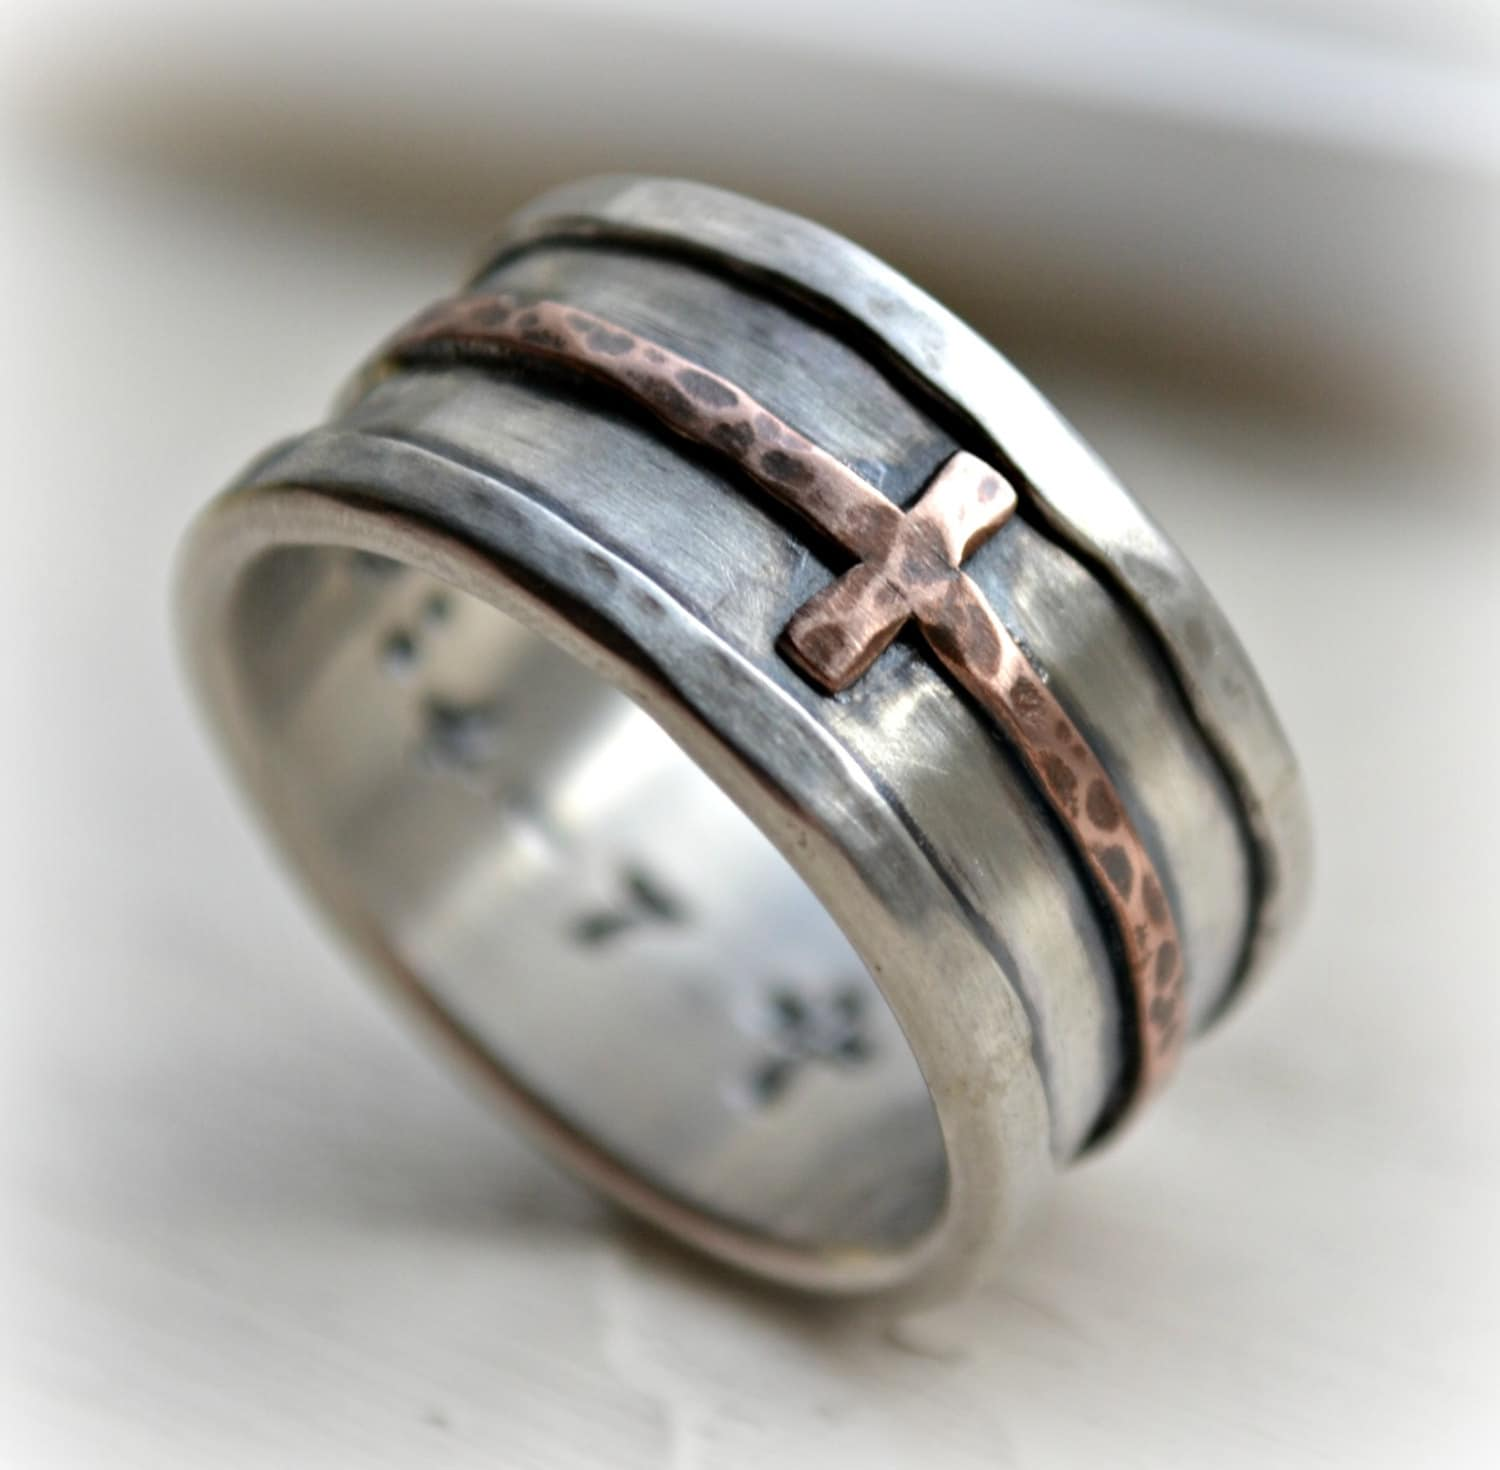 zoom - Christian Wedding Rings